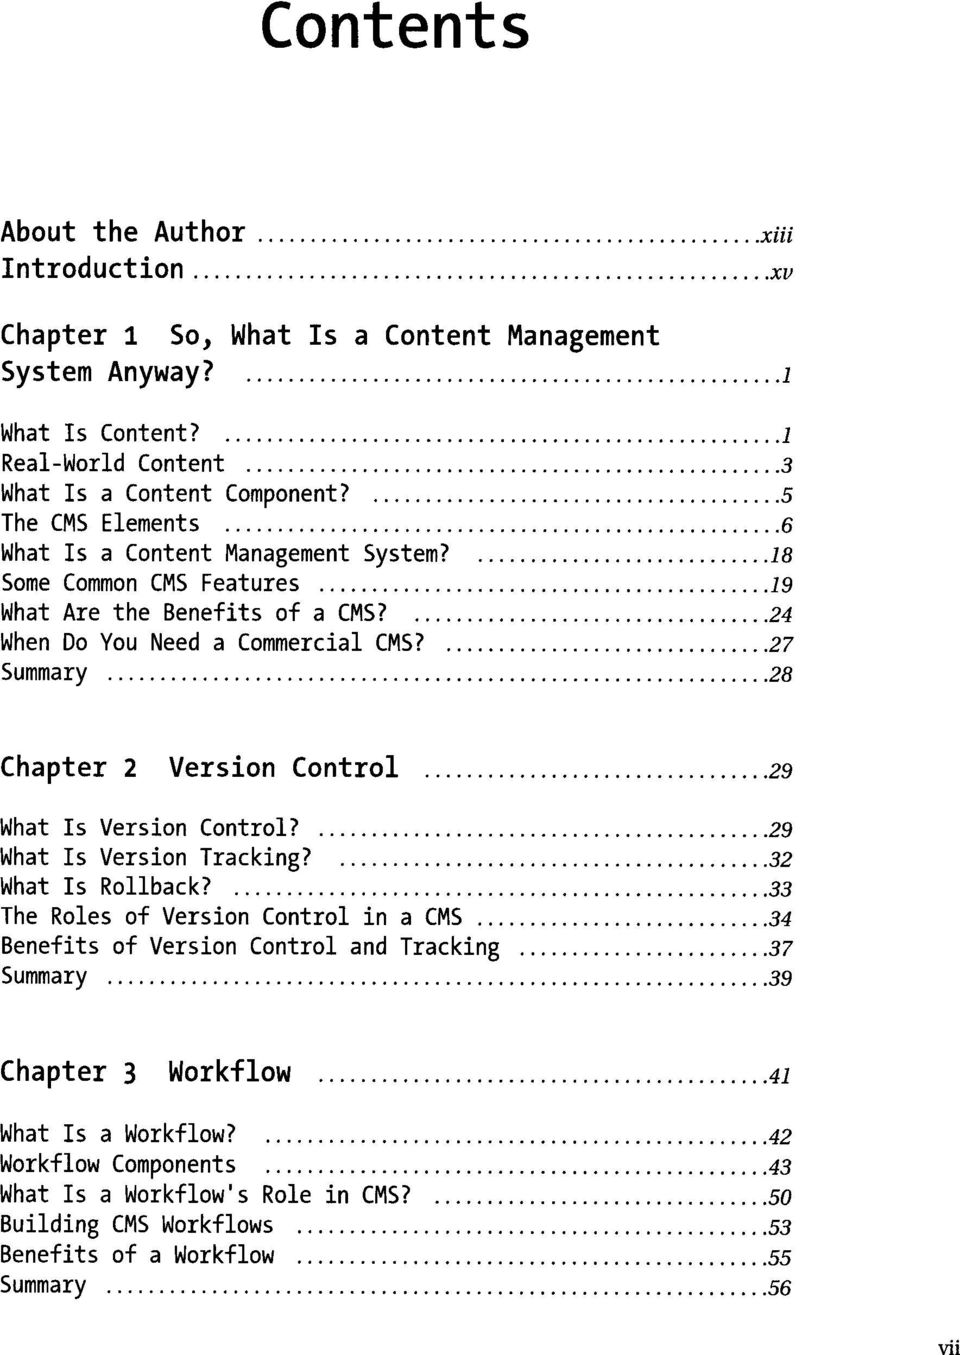 ... 28 Chapter 2 Version Control.... 29 What Is Version Control?.... 29 What Is Version Tracking?.... 32 What Is Rollback?.... 33 The Roles of Version Control in a CMS.